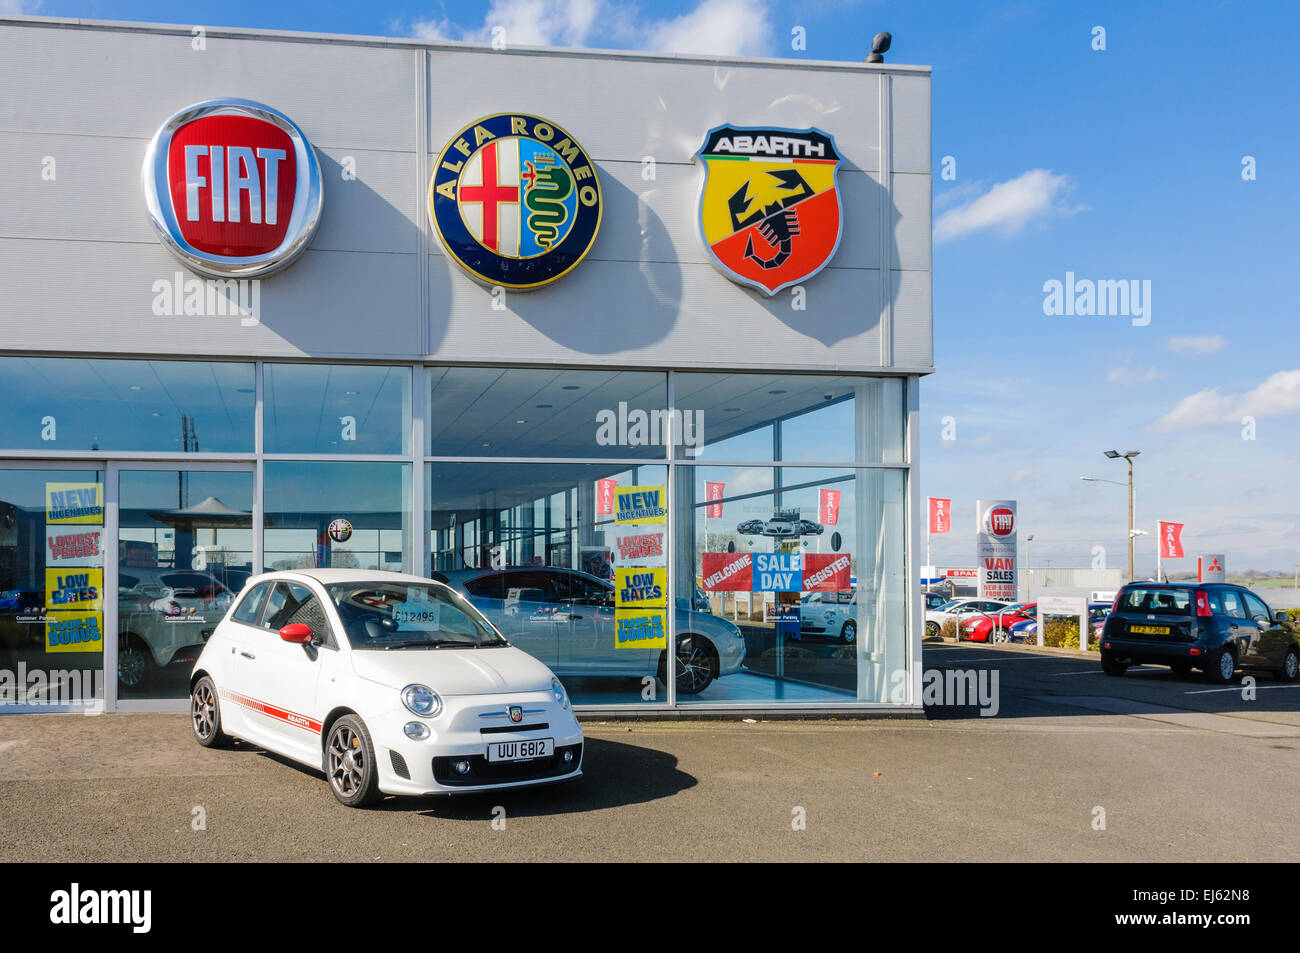 Fiat Abarth Stock Photos Fiat Abarth Stock Images Alamy - Fiat dealers in london